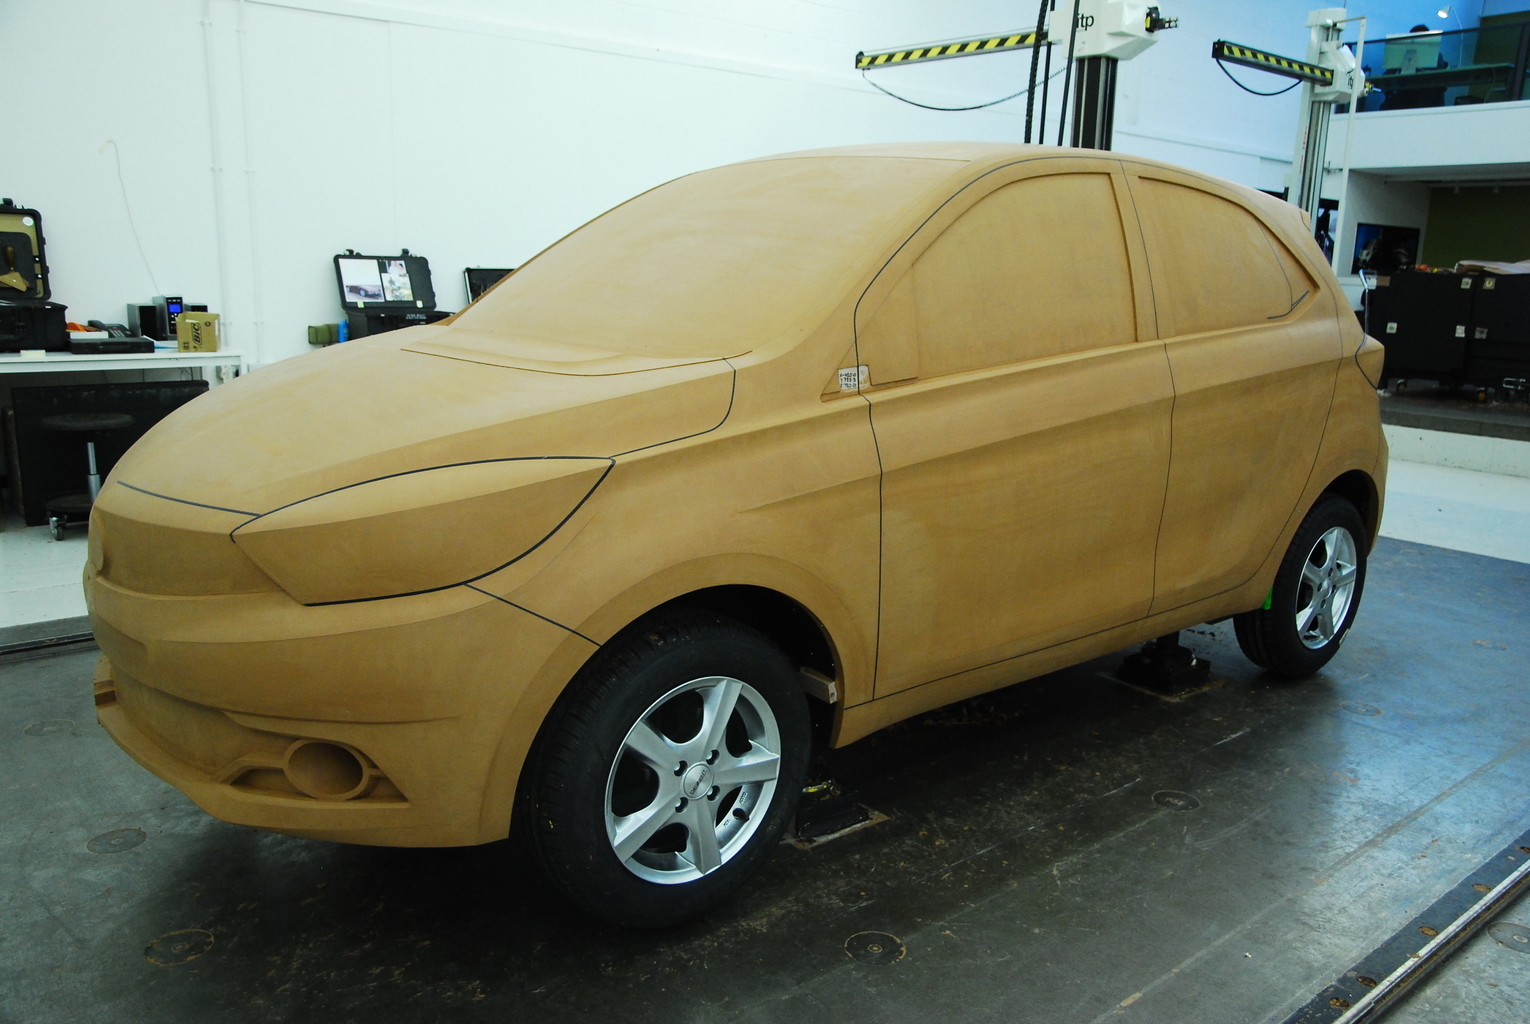 tiago_full_scale_clay_model